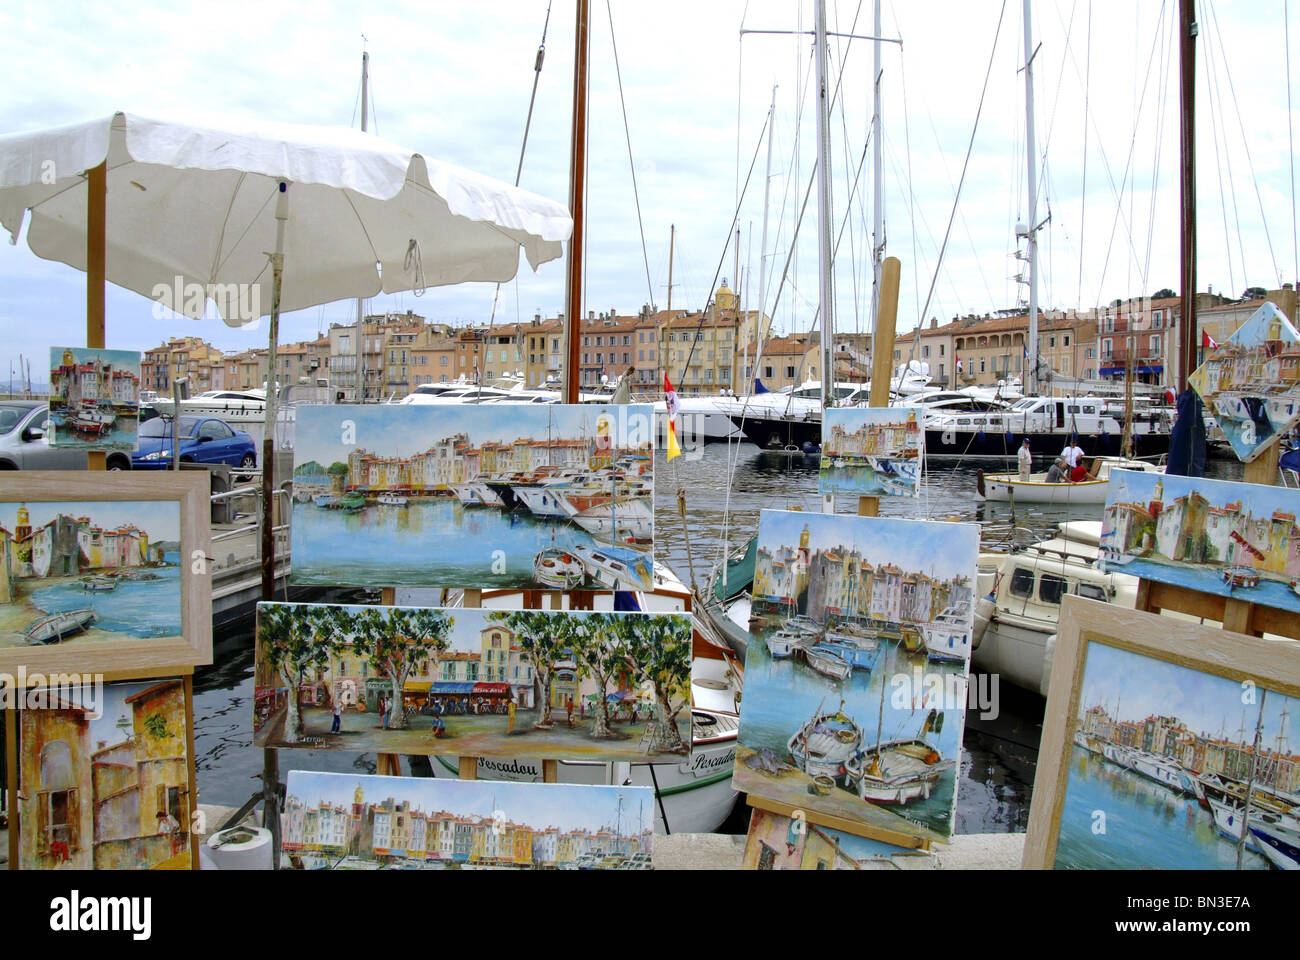 Display of paintings at the harbour of St. Tropez, France Stock Photo